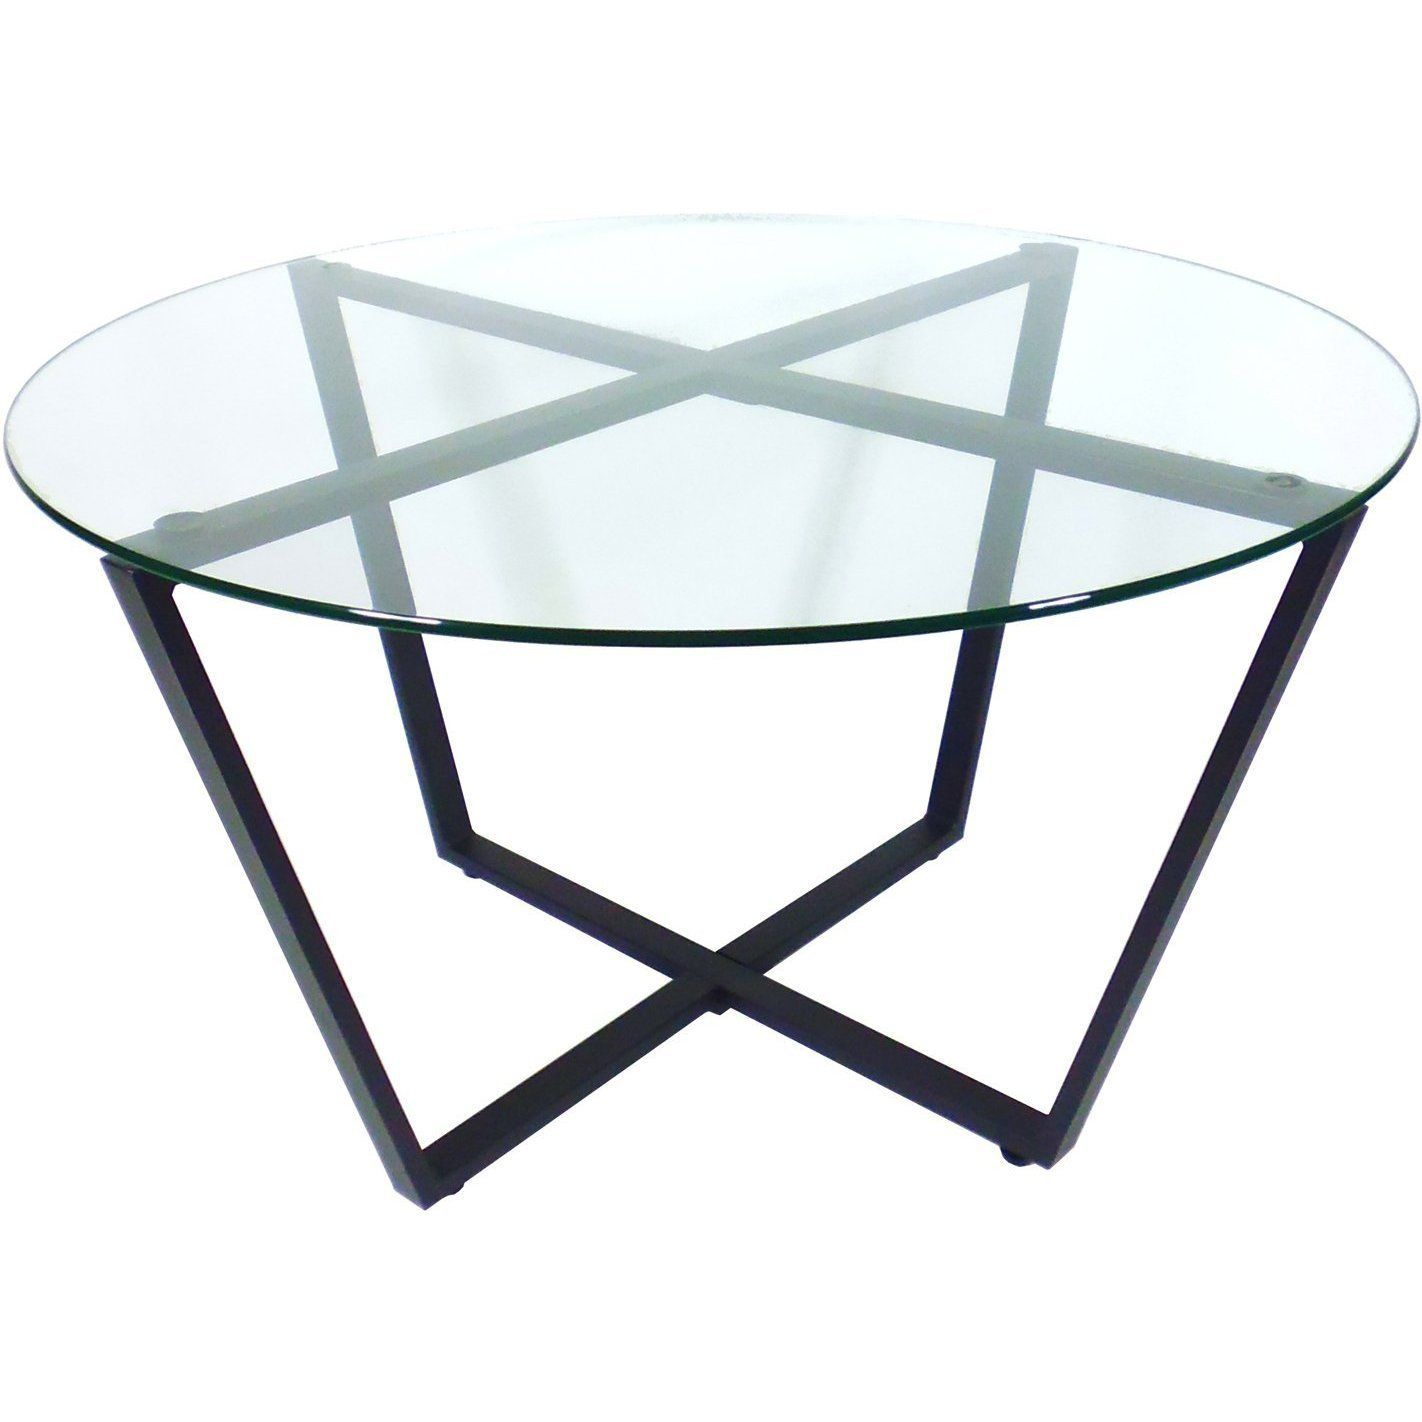 Amazon Com Mango Steam Metro Glass Coffee Table Clear Top Black Base Kitchen Dining Glass Coffee Table Living Room Accent Tables Cool Coffee Tables [ 1422 x 1422 Pixel ]